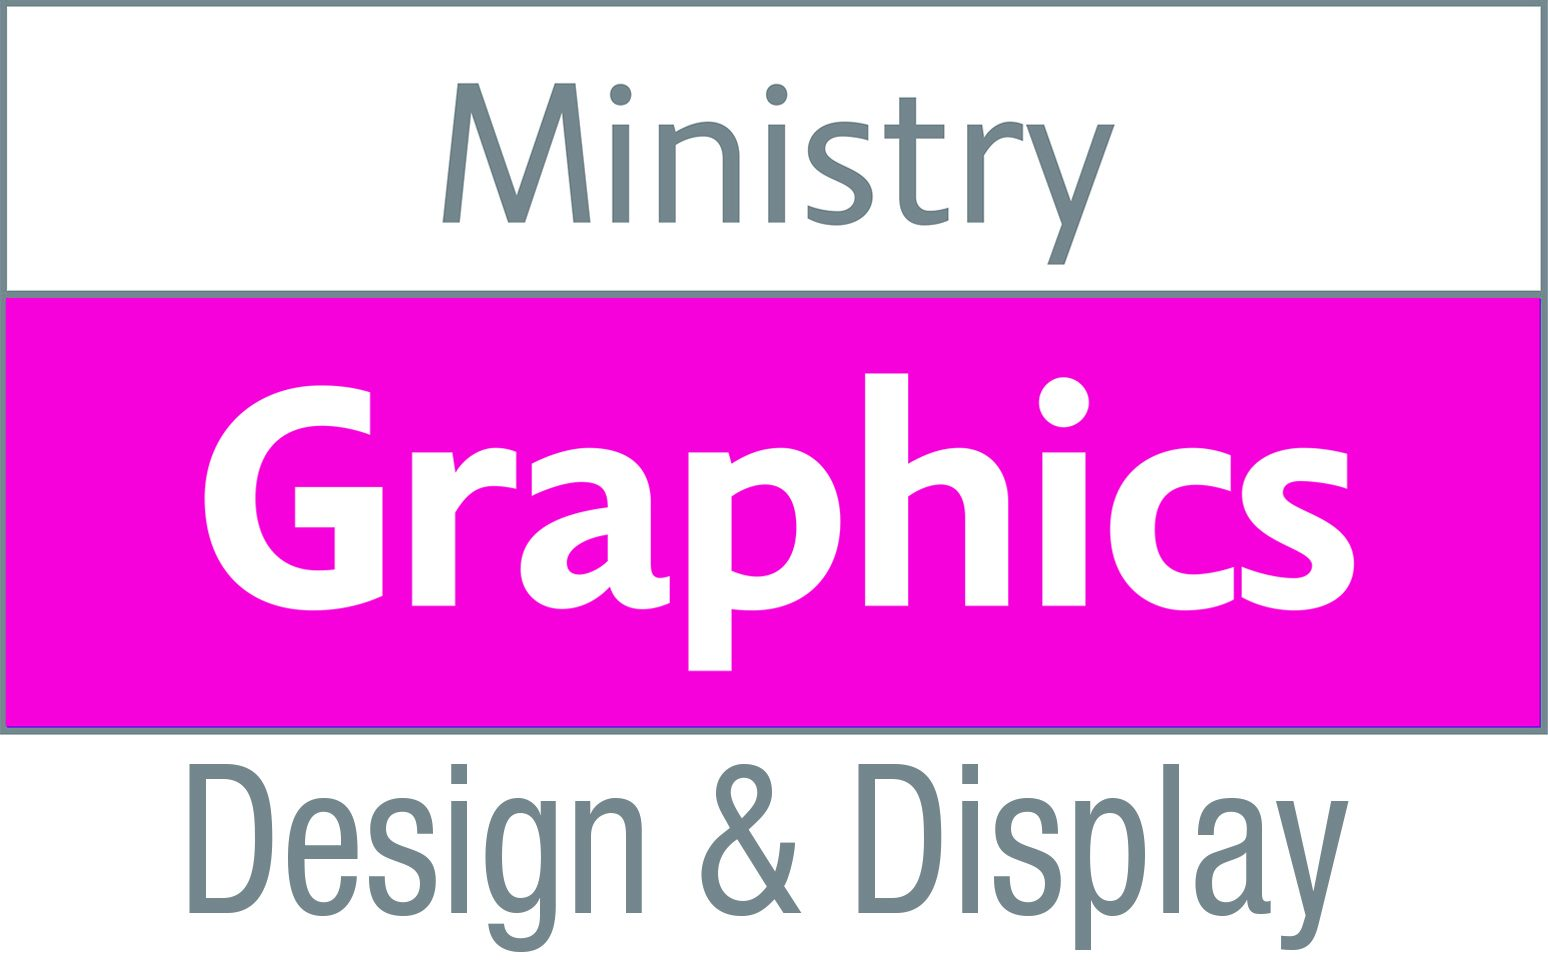 Ministry Graphics